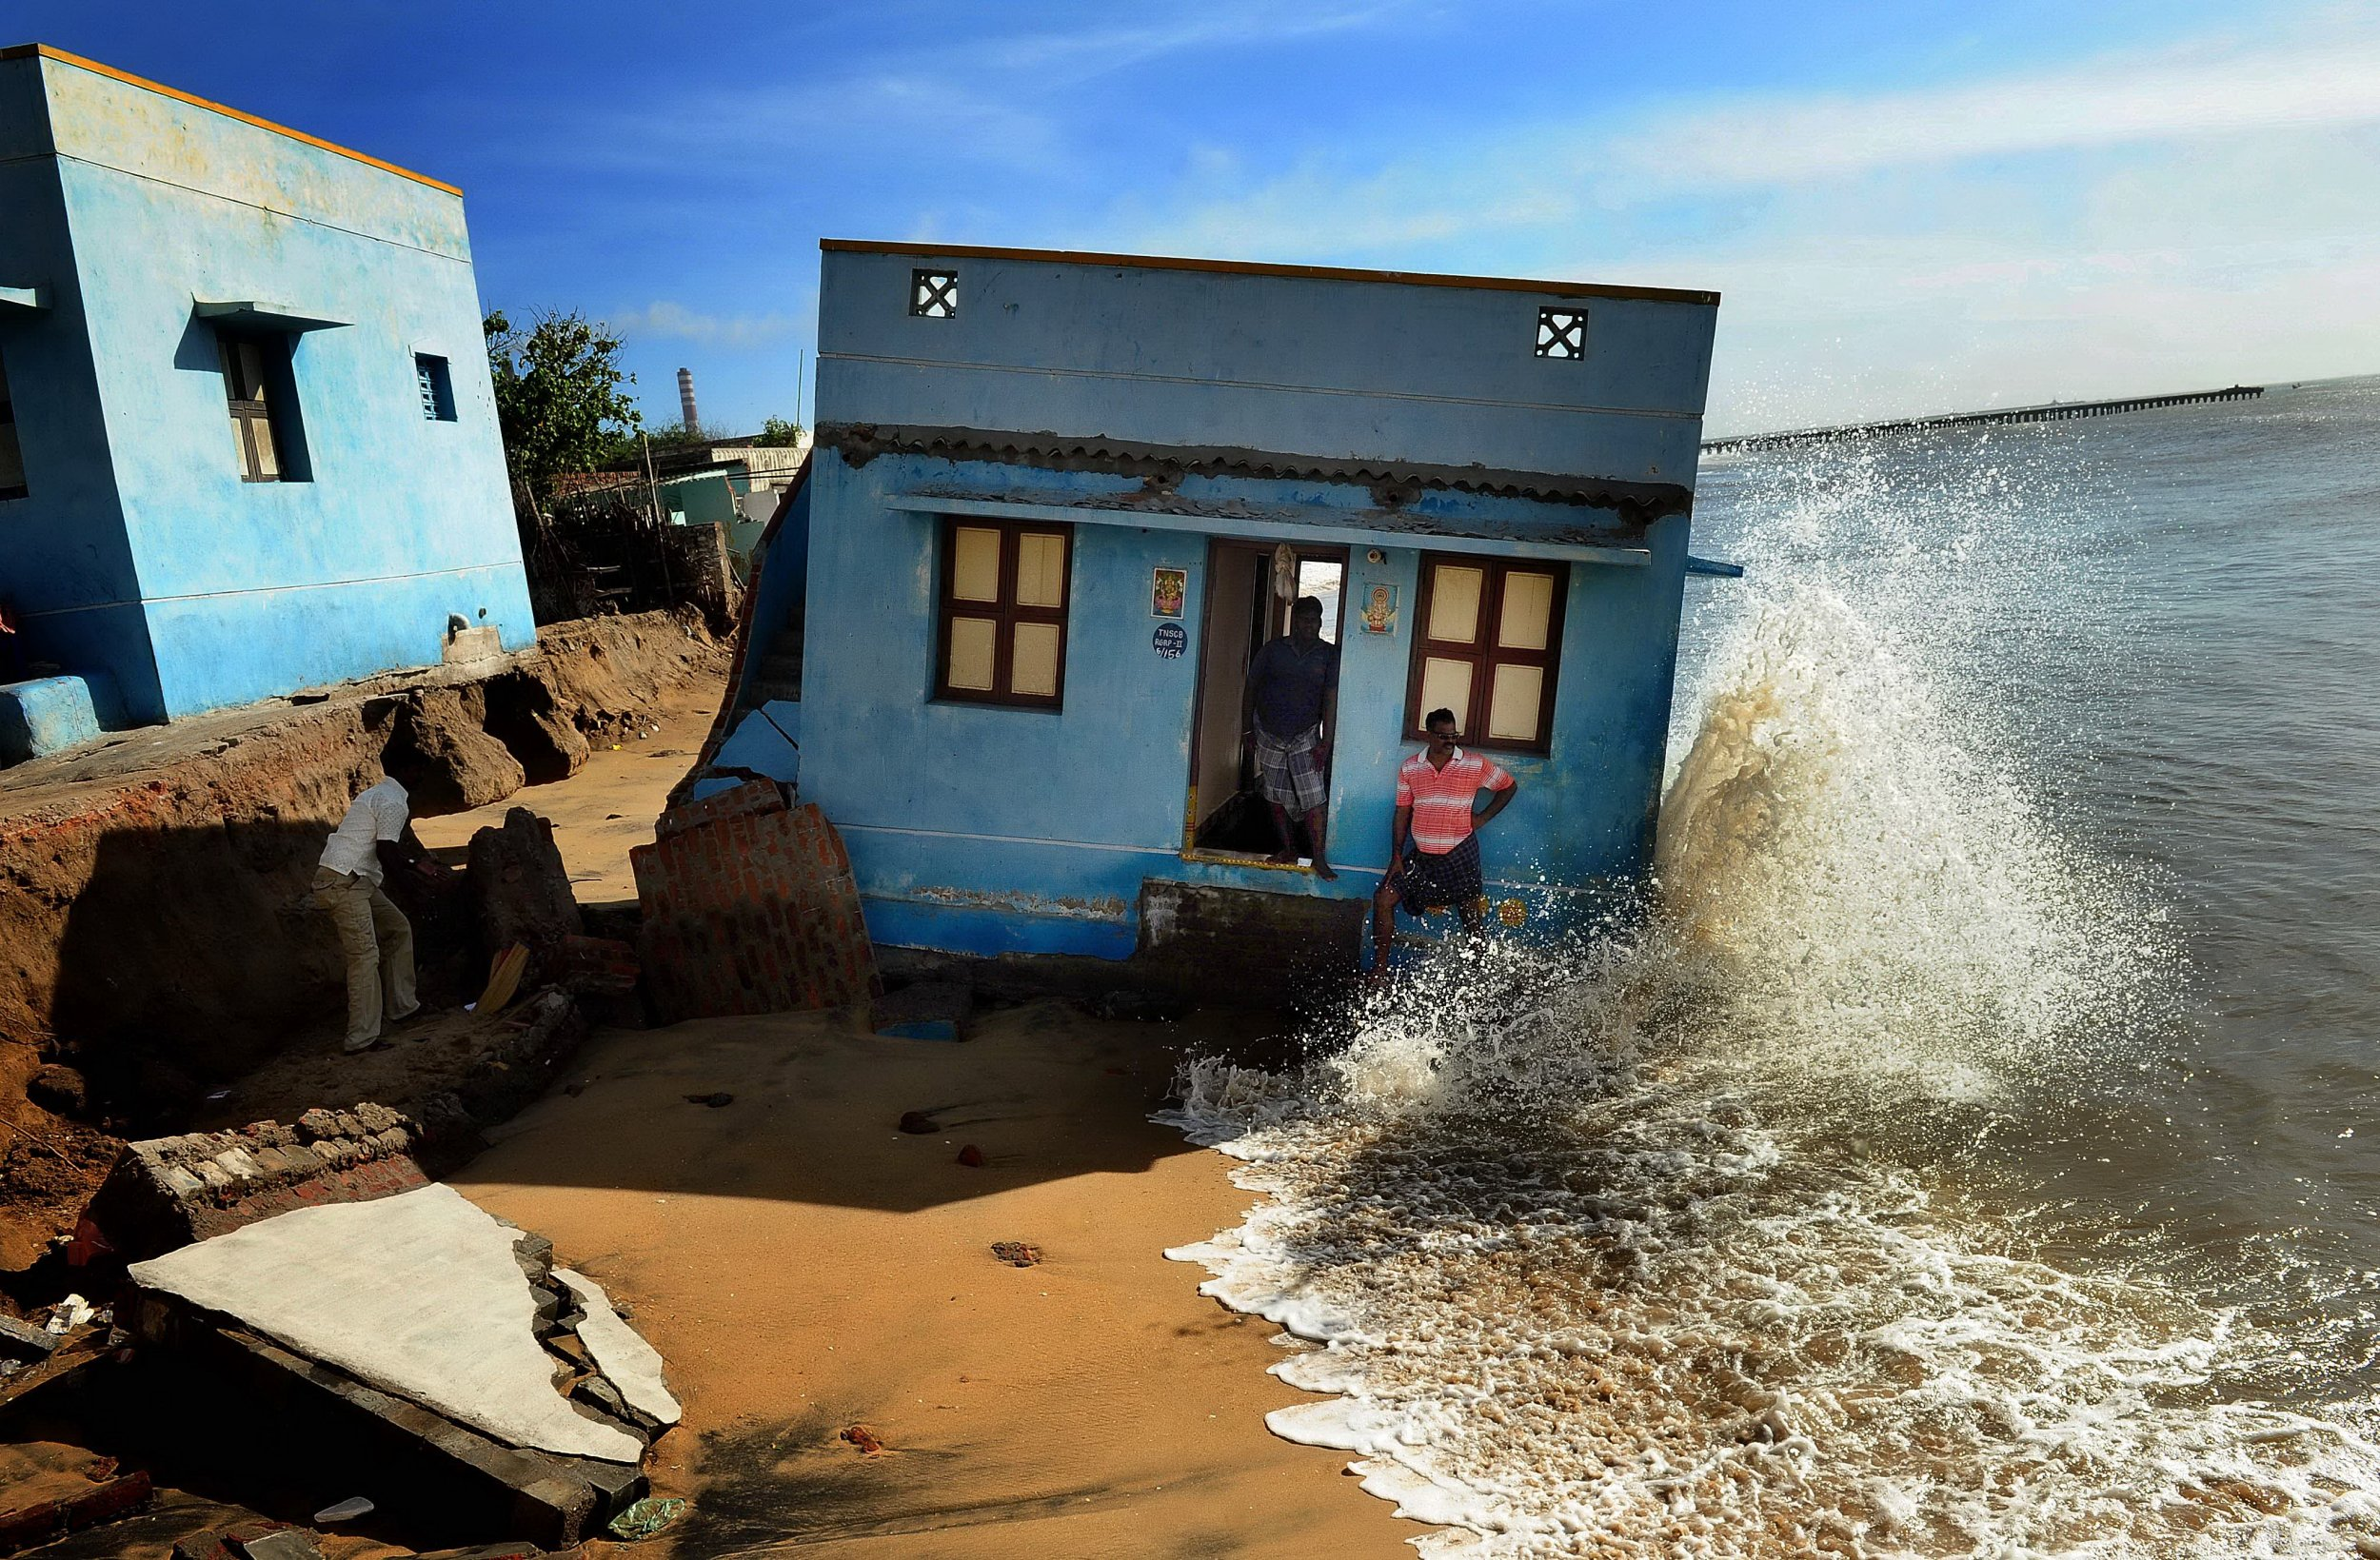 20 incredible photos from the Atkins Ciwem environmental photographer of the year competition